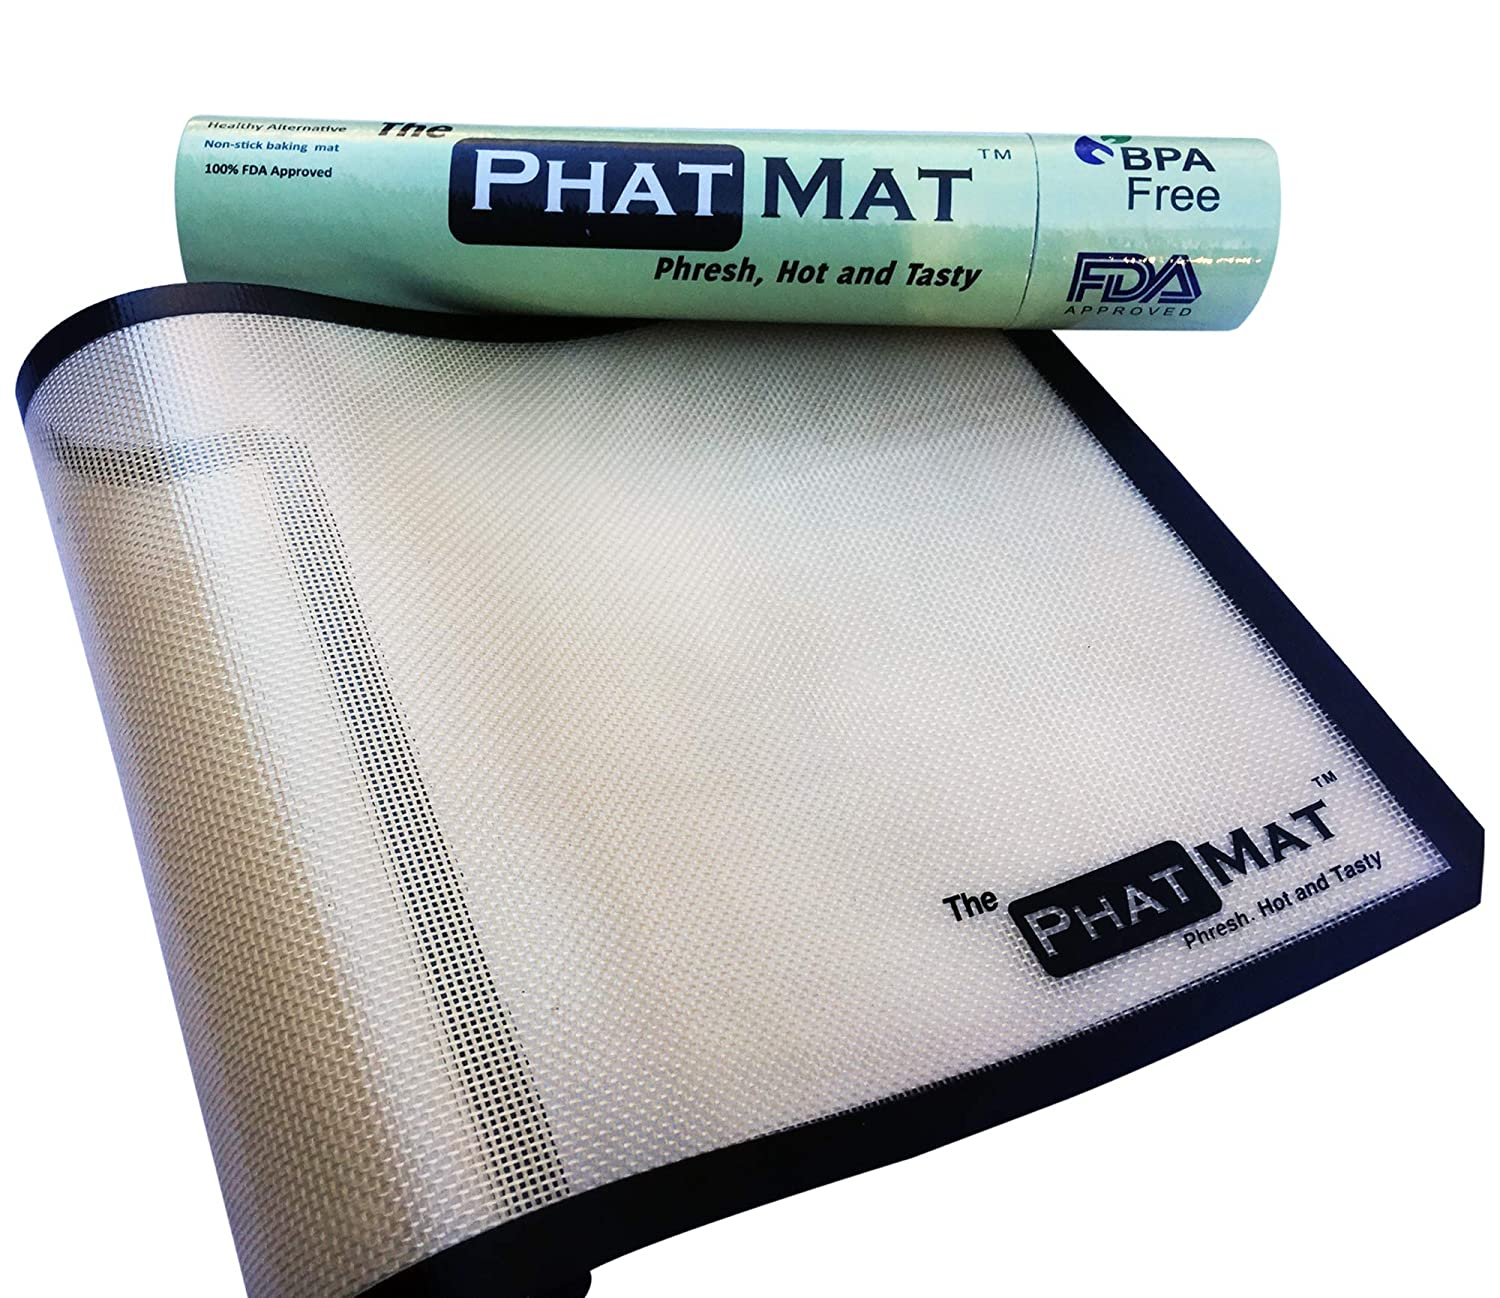 PhatMat Silicone Baking Mat for Healthy Cooking from The Half Sheet Mat, Saves Time & Money